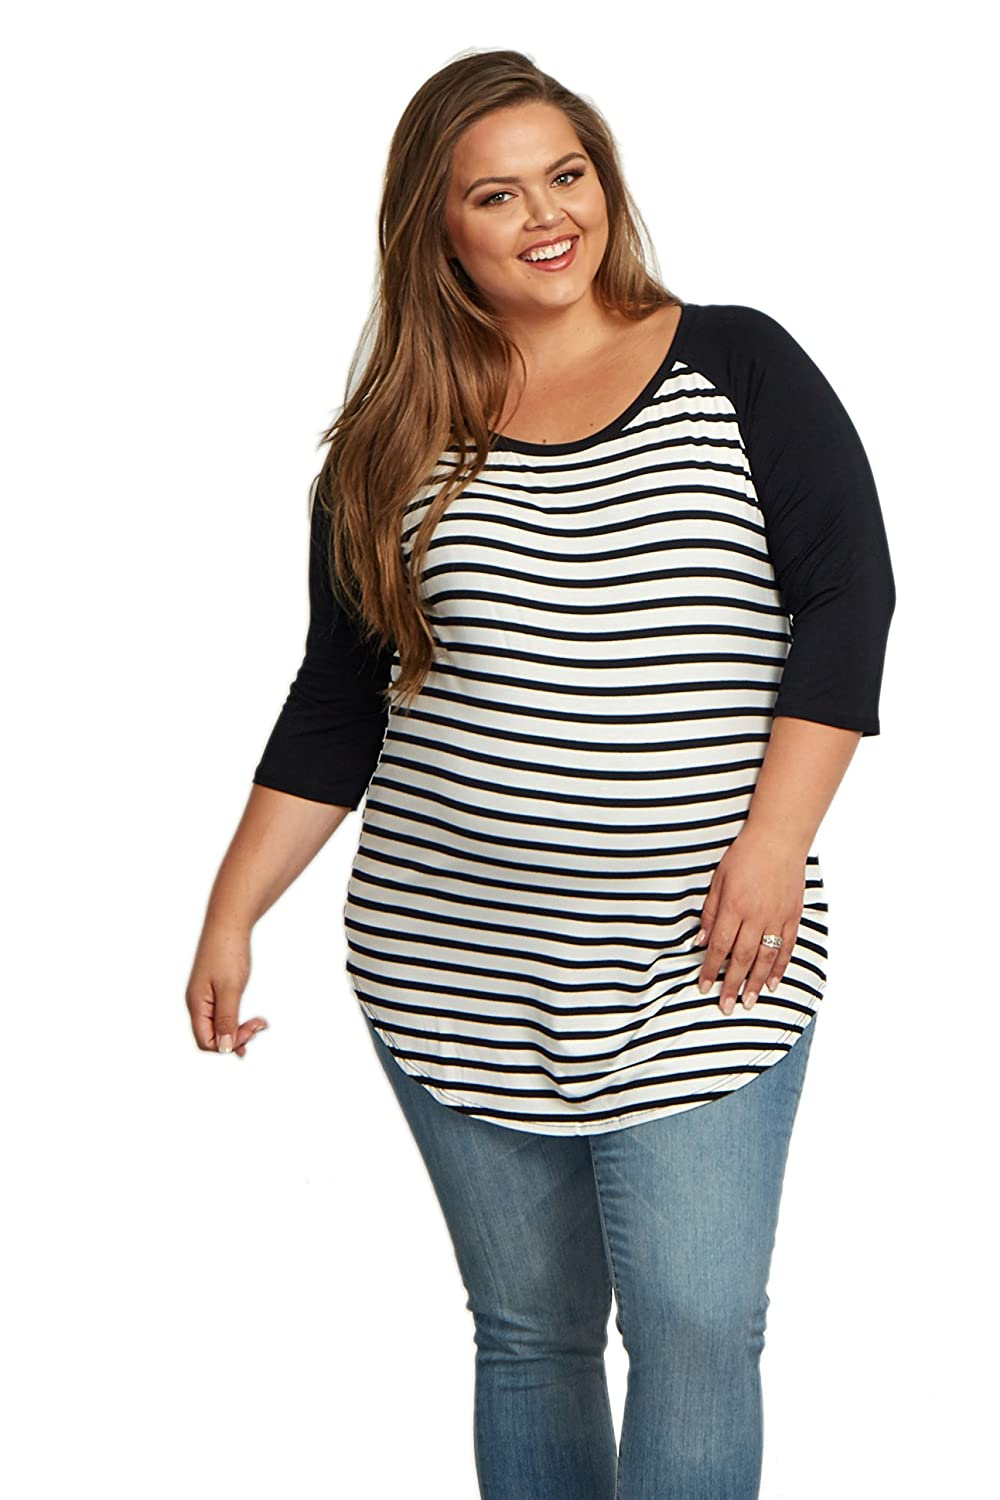 f4b85788cdda8 PinkBlush Maternity Striped Colorblock Sleeve Plus Size Top at Amazon  Women's Clothing store: